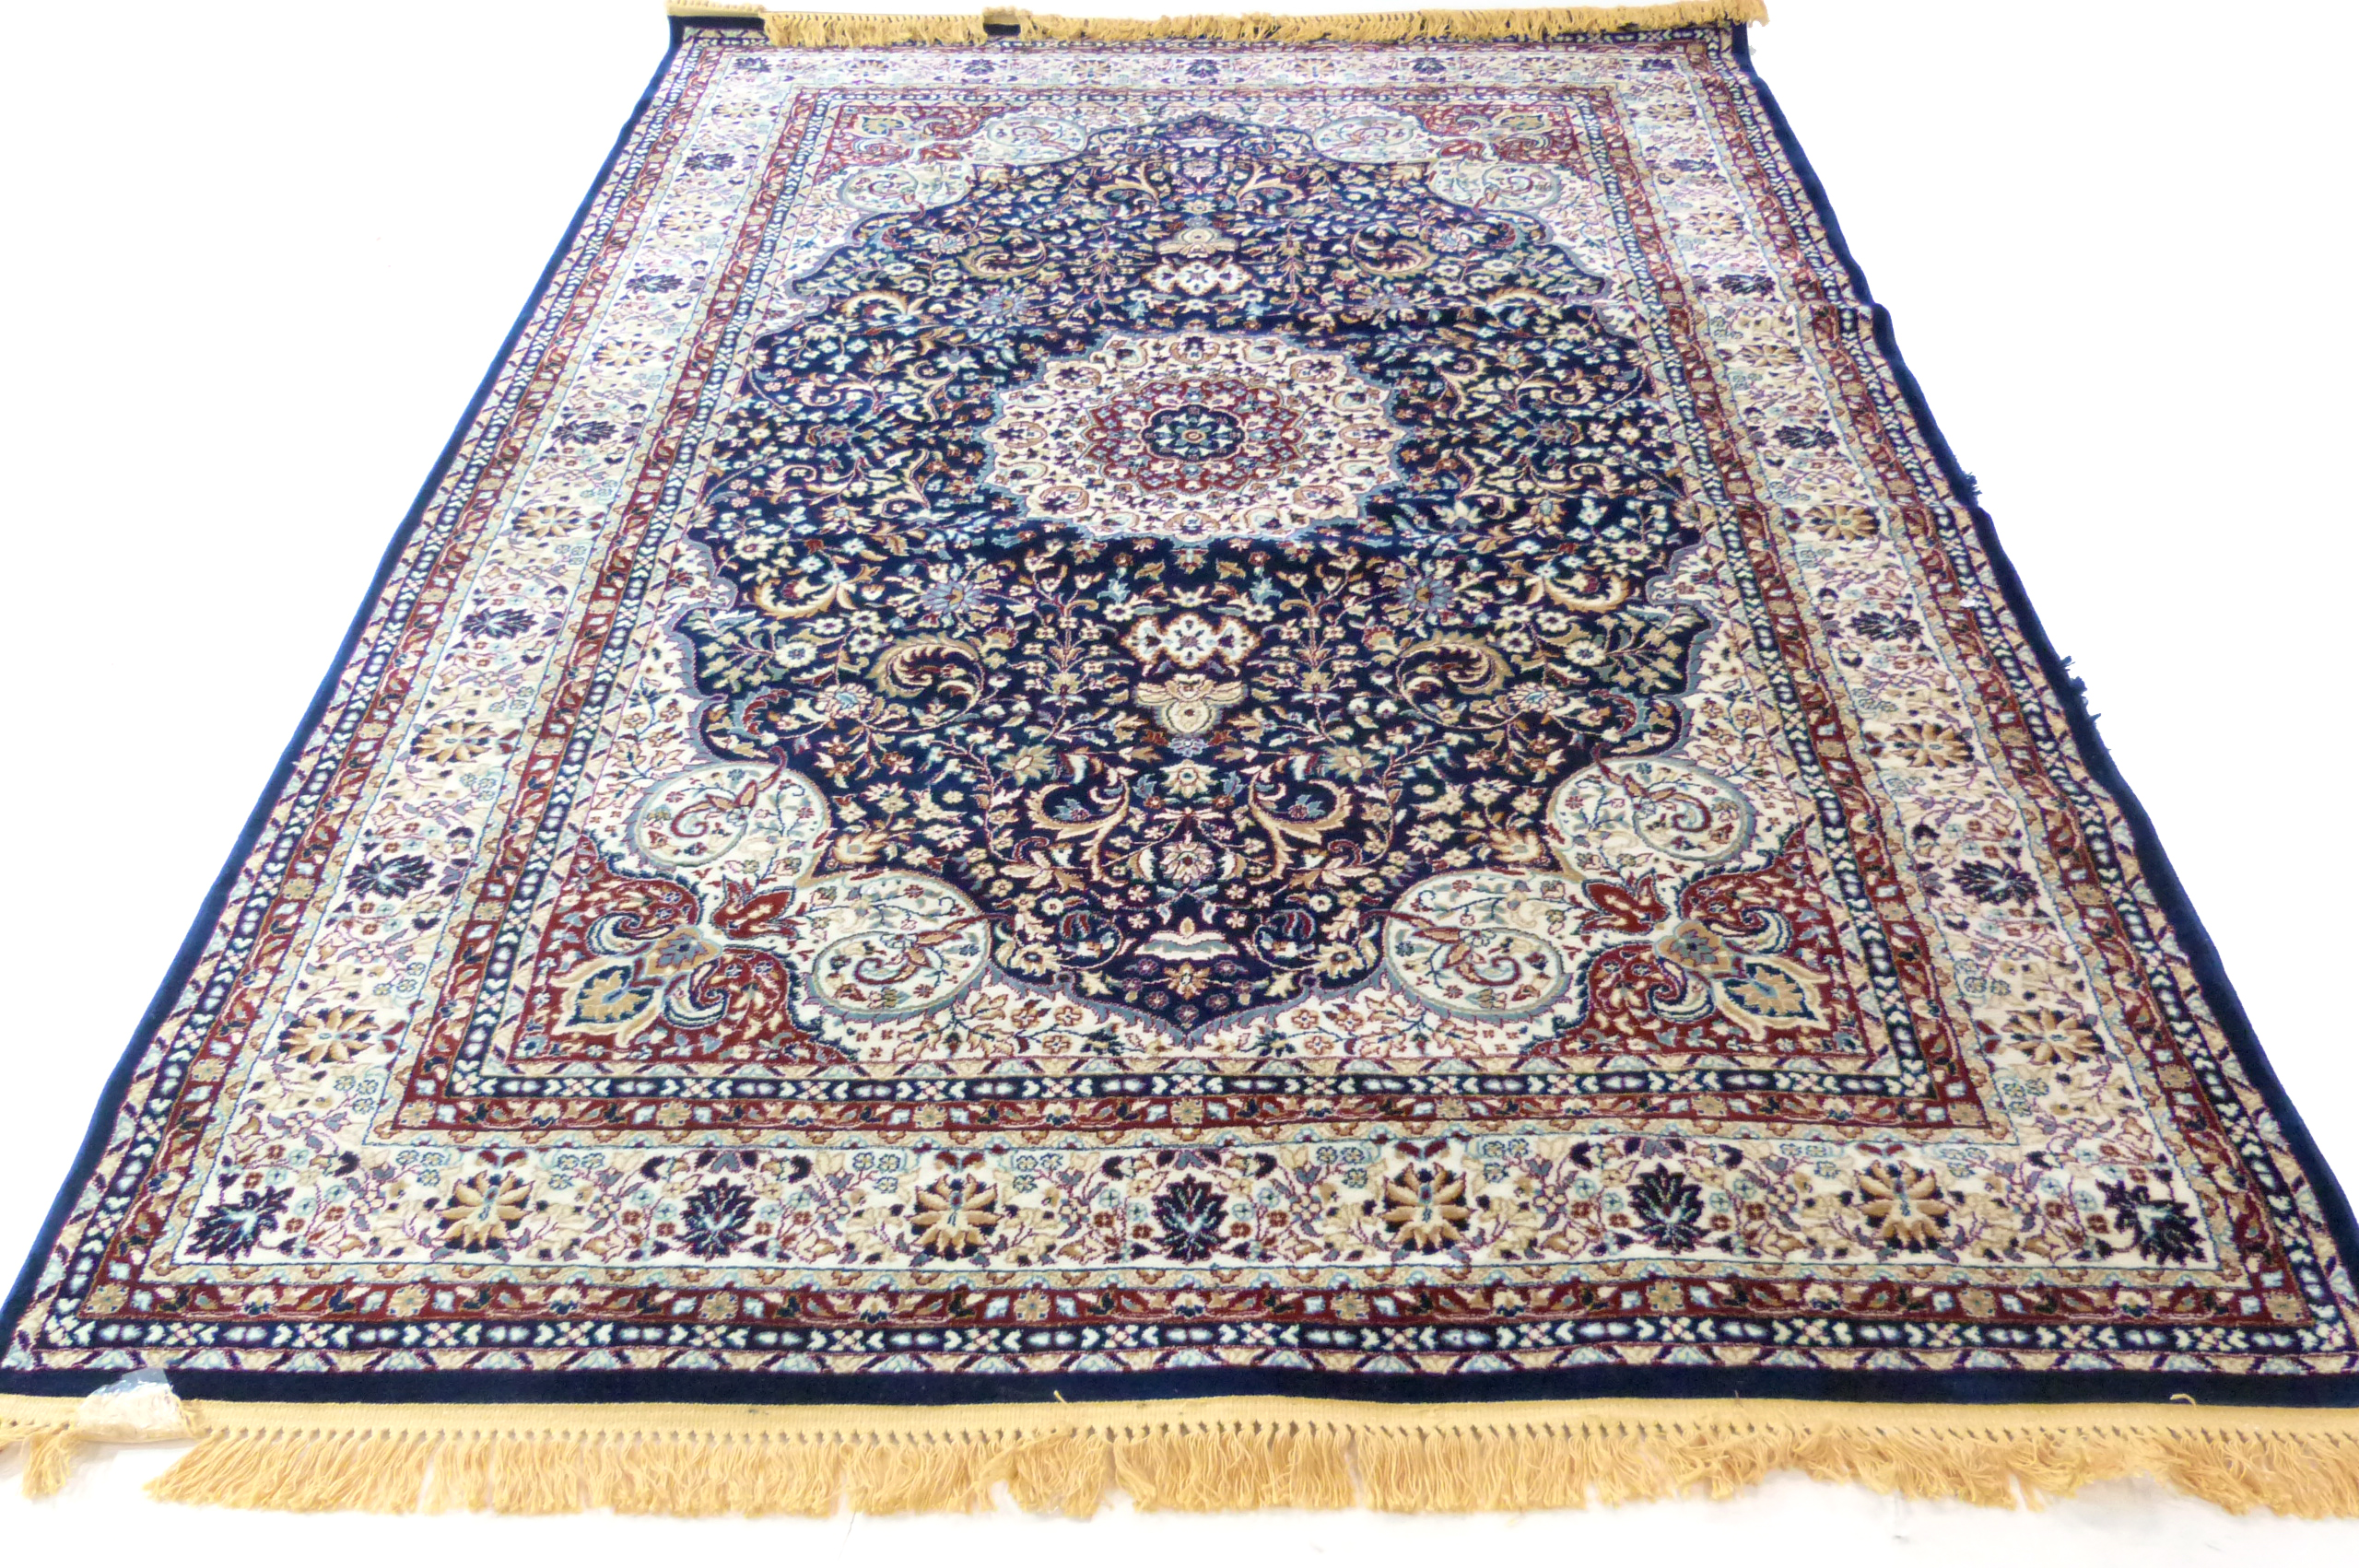 Rich blue ground full pile Turkish Carpet, with floral medallion design 320cm x 200cm approximately - Image 2 of 8